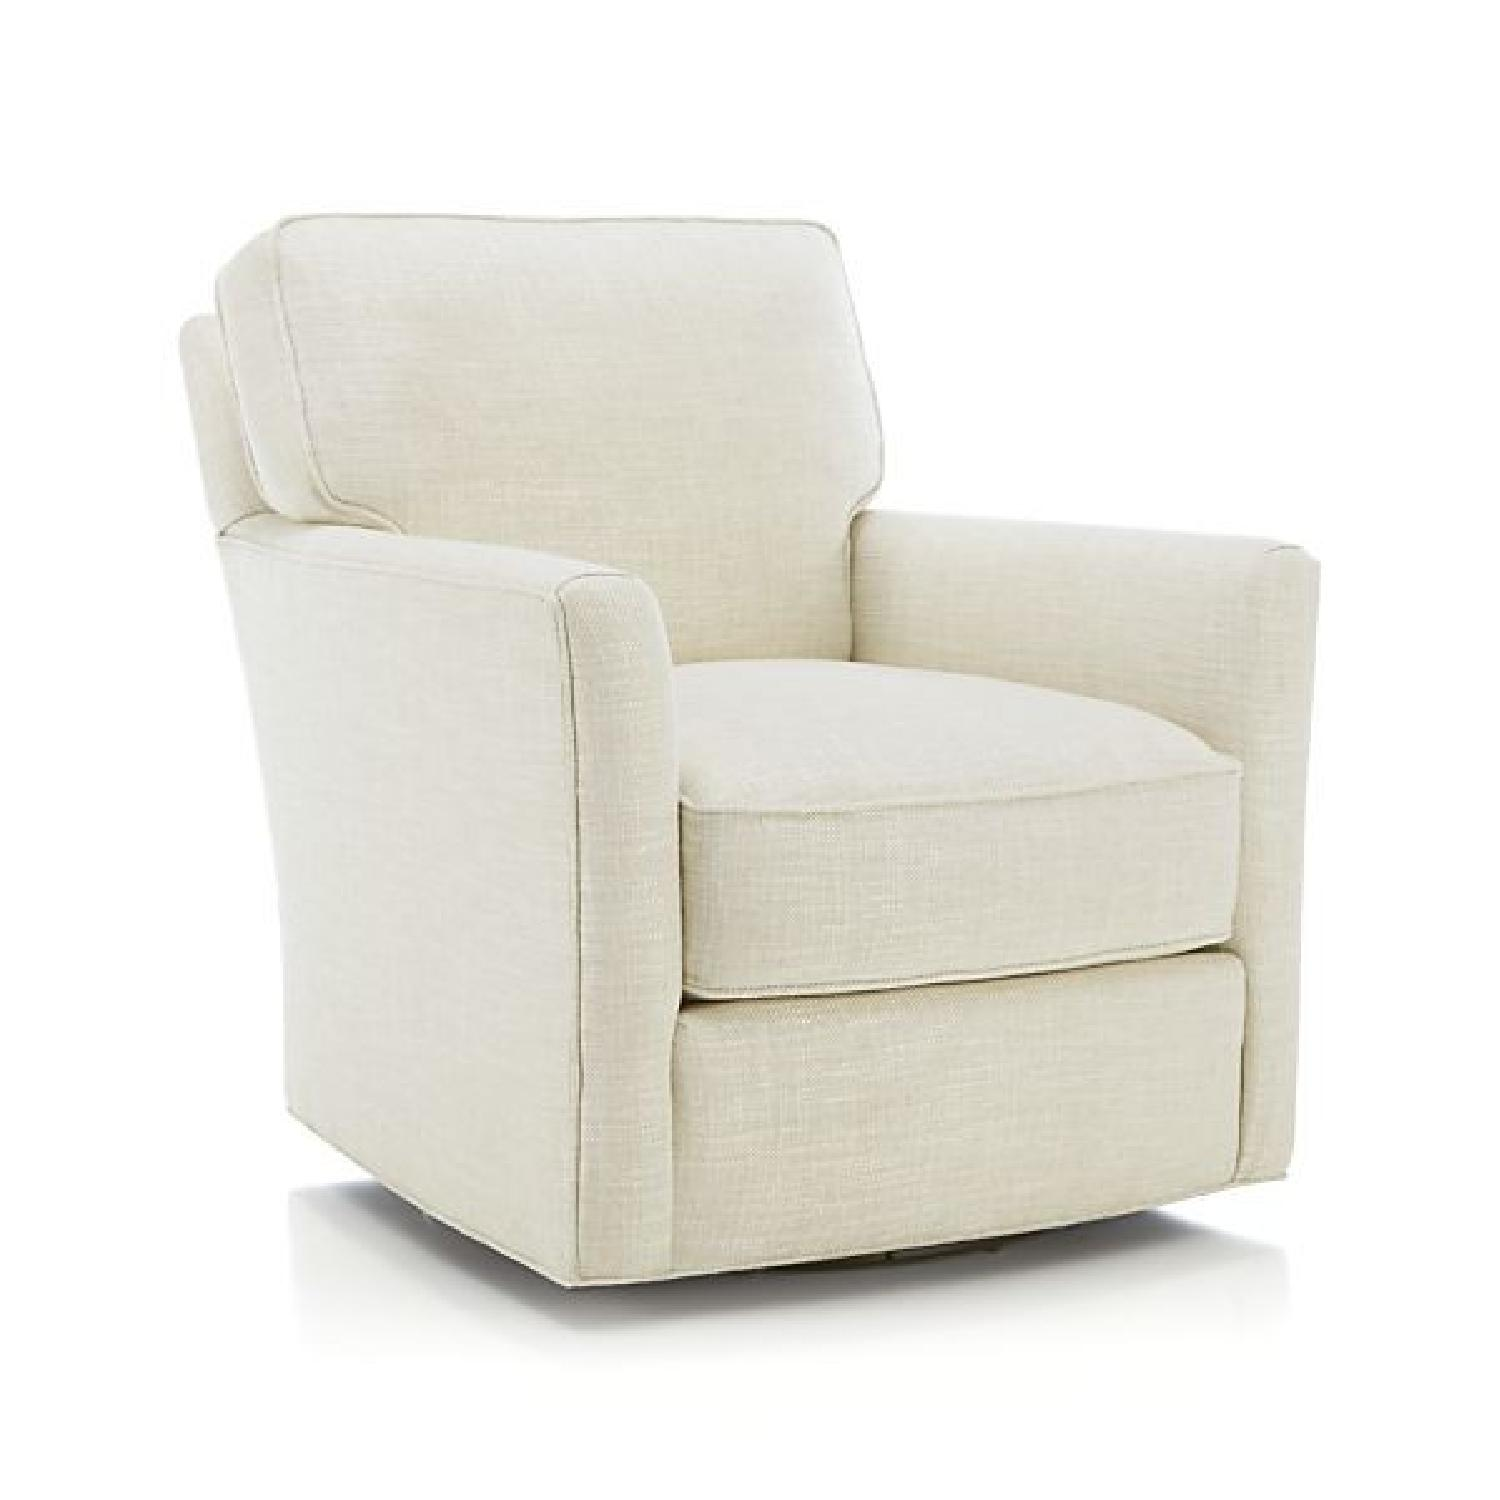 Crate & Barrel Talia Swivel Chairs